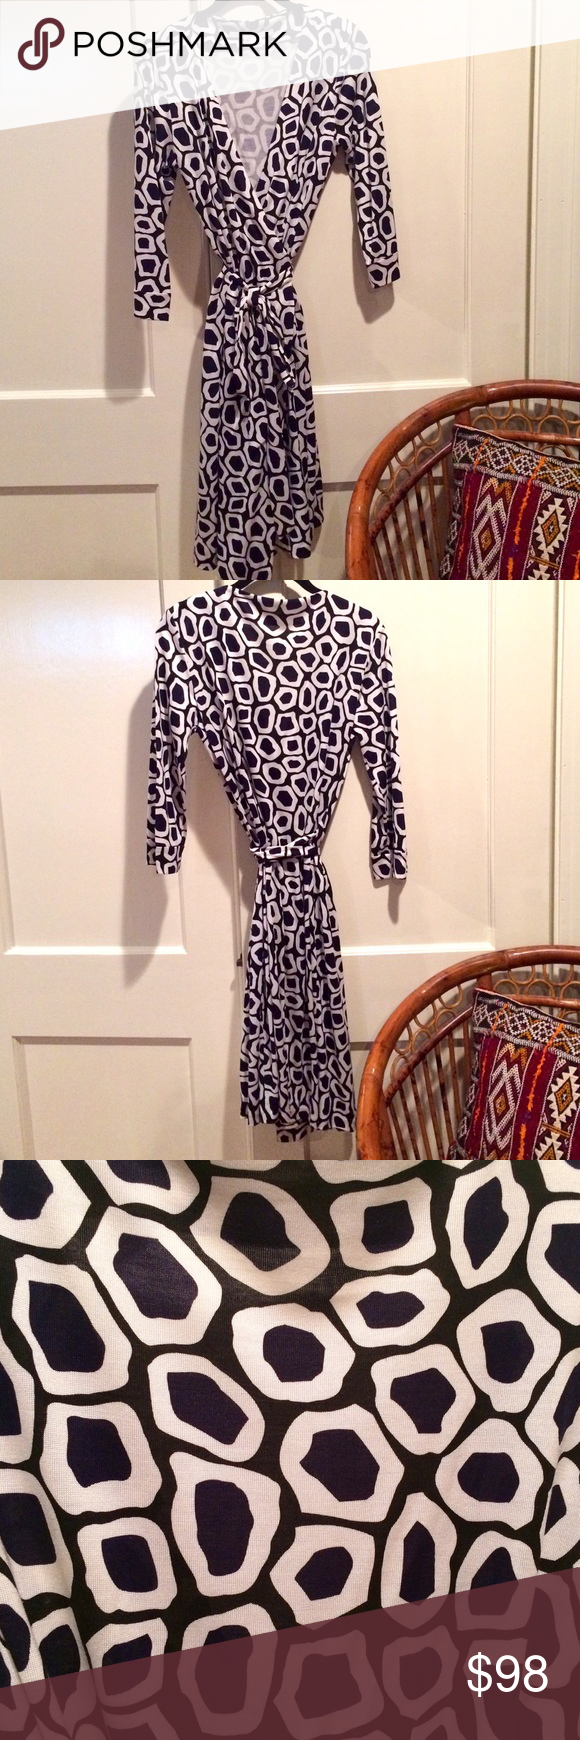 Classic wrap dress by Diane Von Furstenberg. Classic wrap dress by Diane Von Furstenberg. Julian Two style in black/white print. In excellent condition, worn once. Size 12, but fits like 8/10. Runs small. 100% Silk. Diane von Furstenberg Dresses Midi